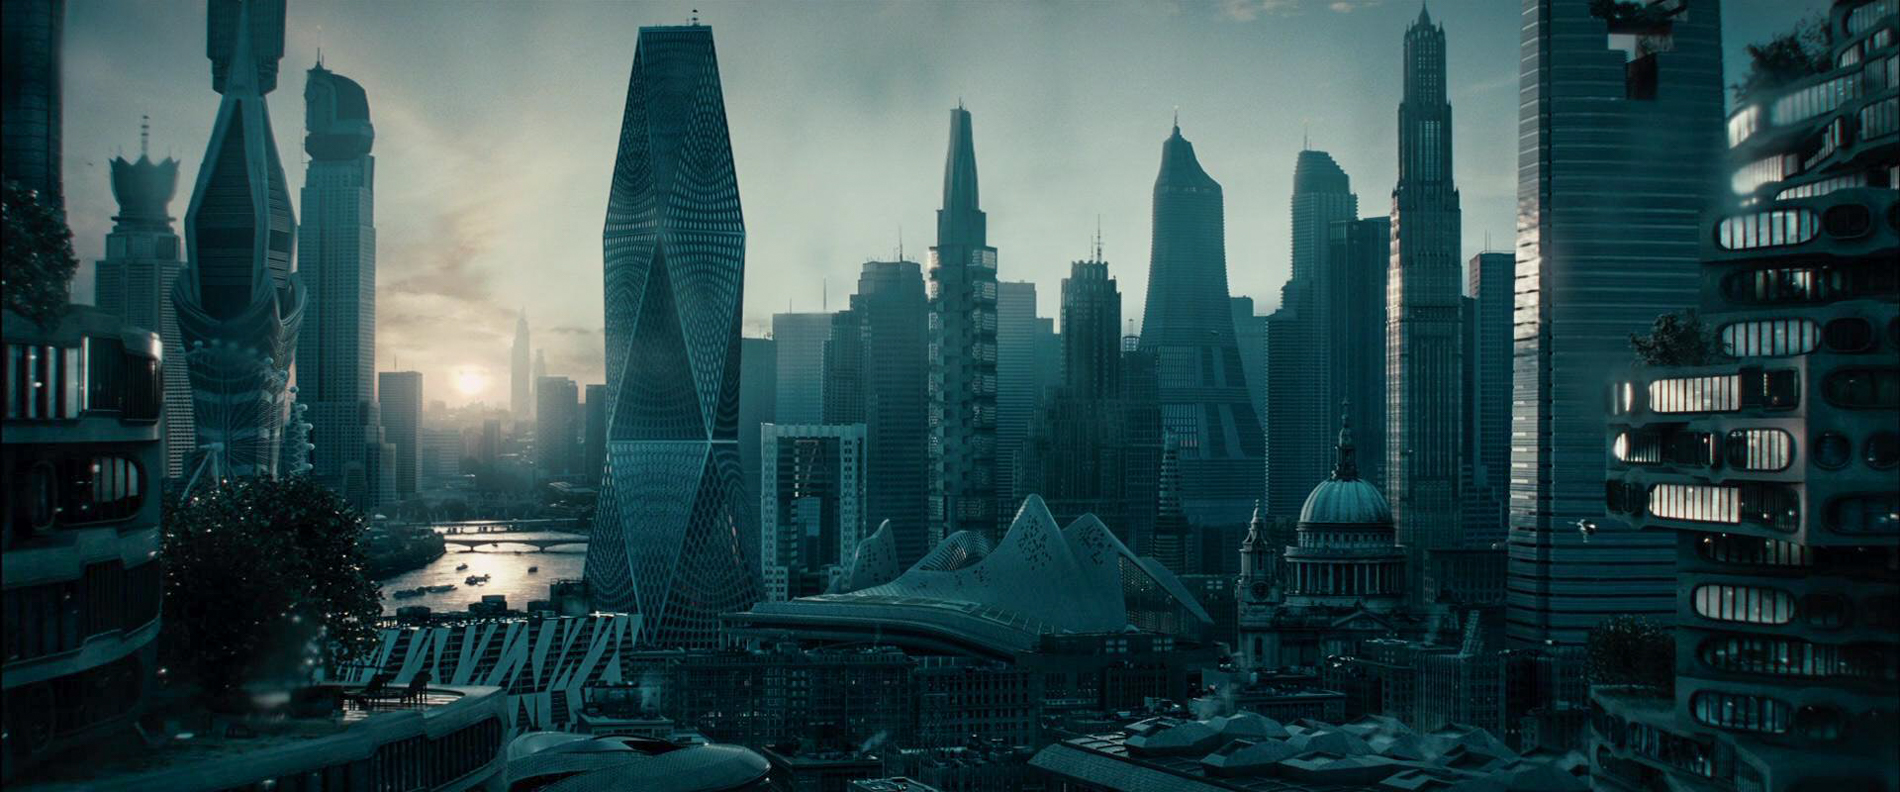 The London of the future - Star Trek into Darkness